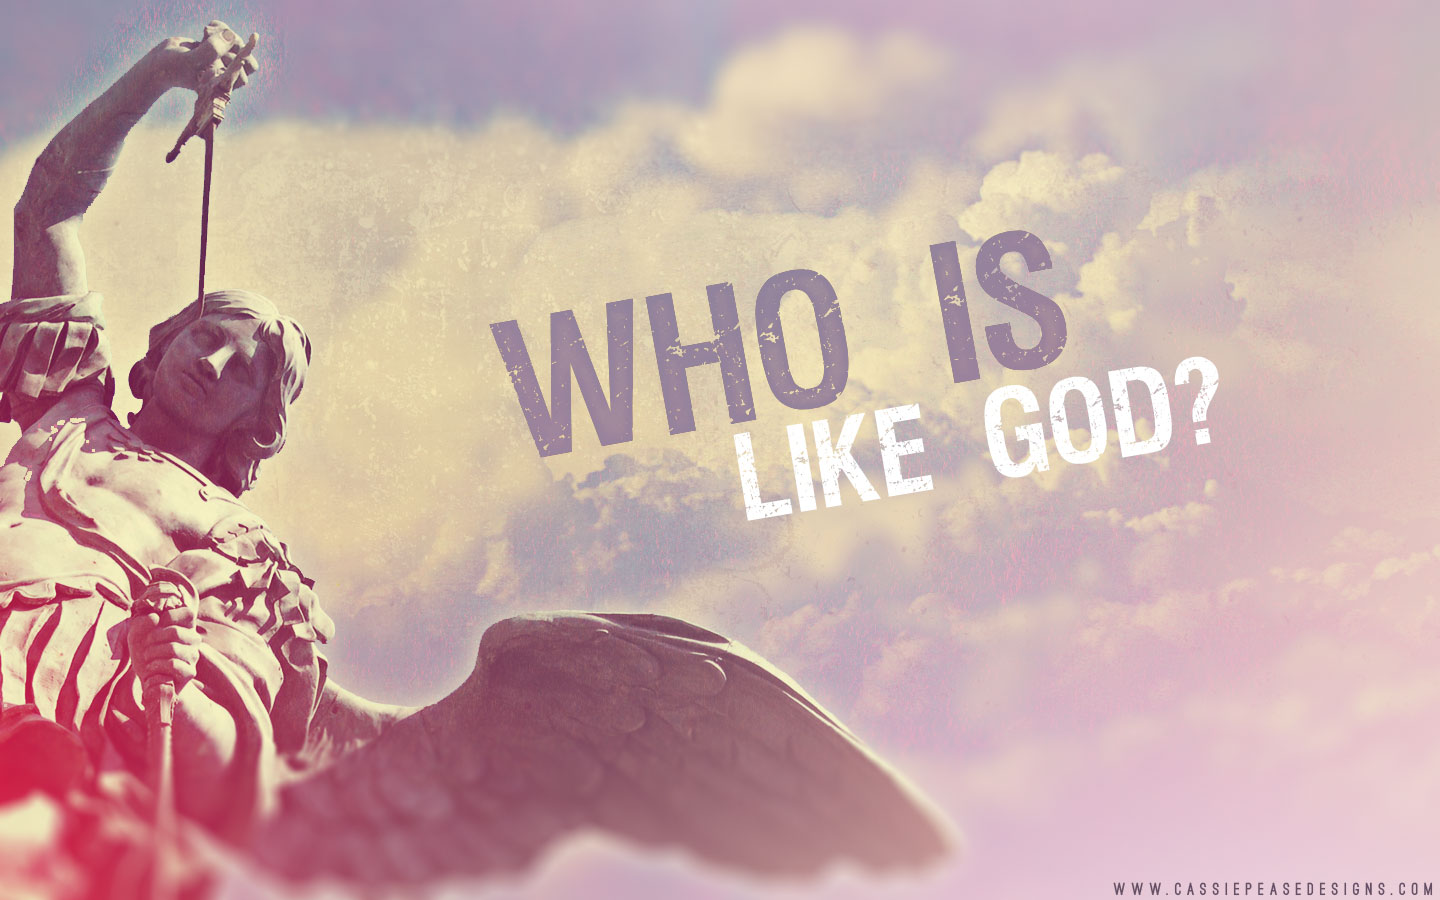 St Michael Who Is Like God Desktop Wallpaper